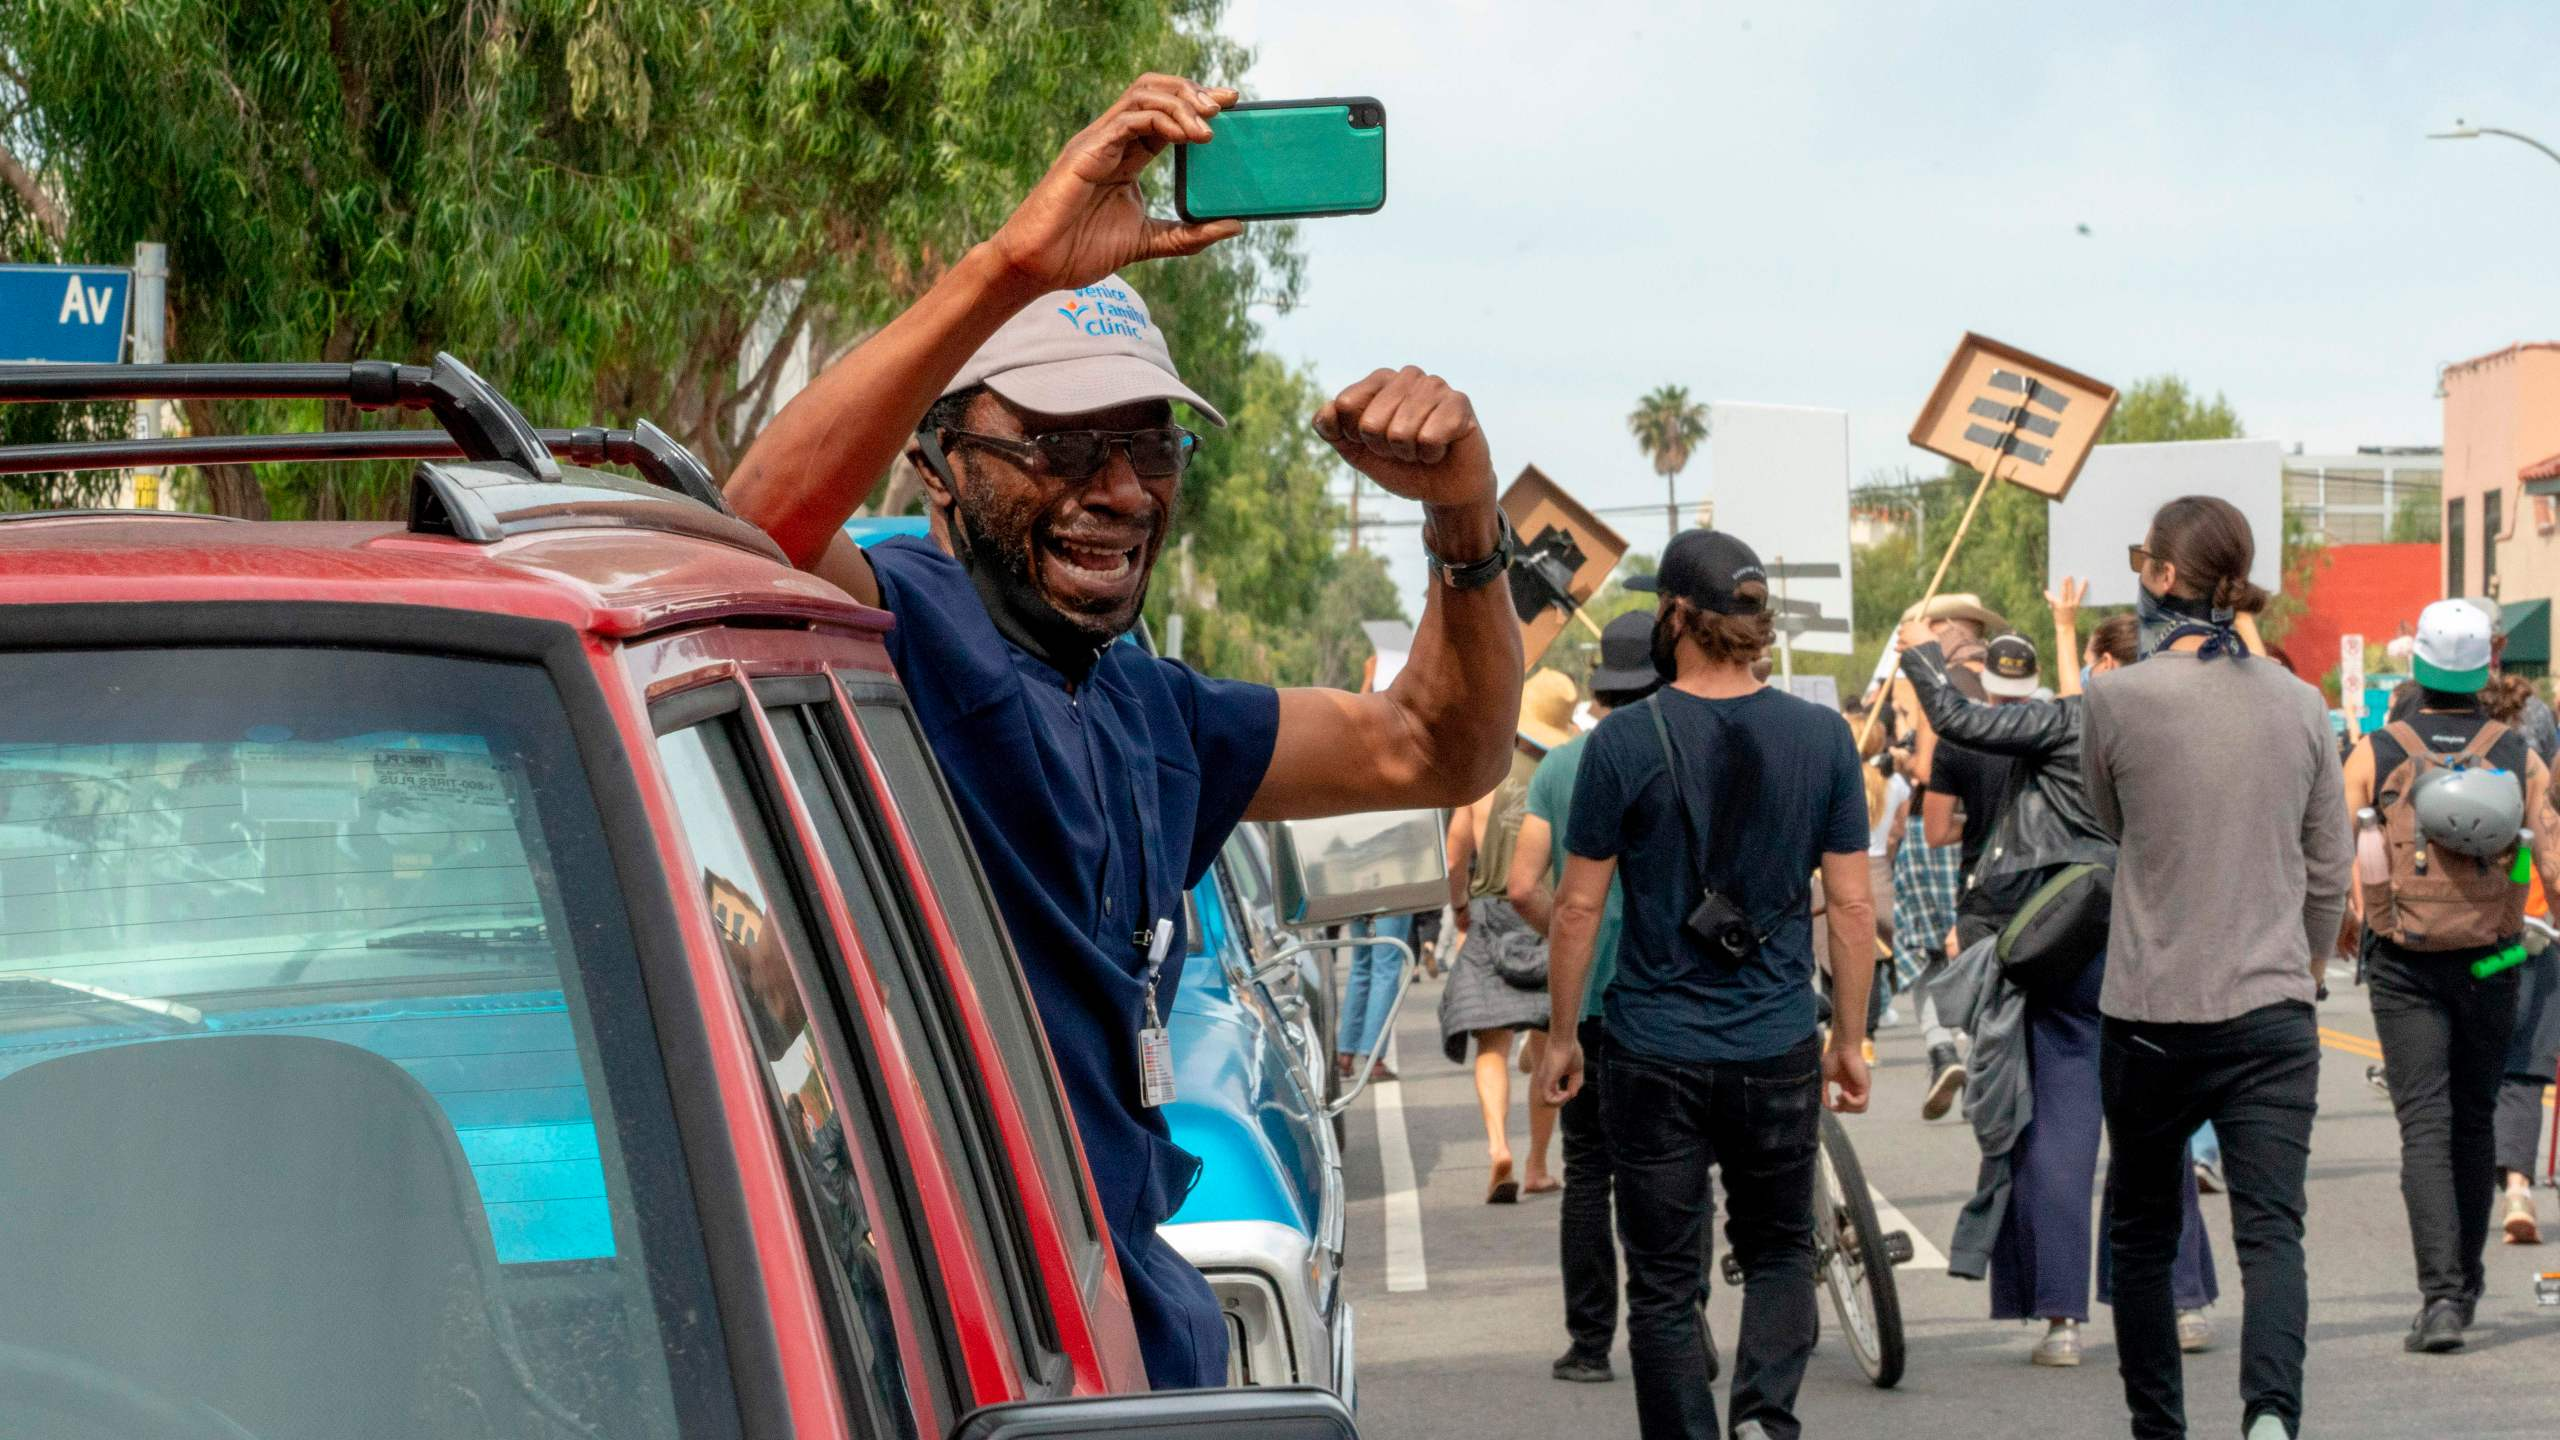 Tunde Obazee becomes emotional while taking a break from his job to cheer on marchers in Venice during a demonstration over the death of George Floyd in Los Angeles on June 2, 2020. (KYLE GRILLOT/AFP via Getty Images)